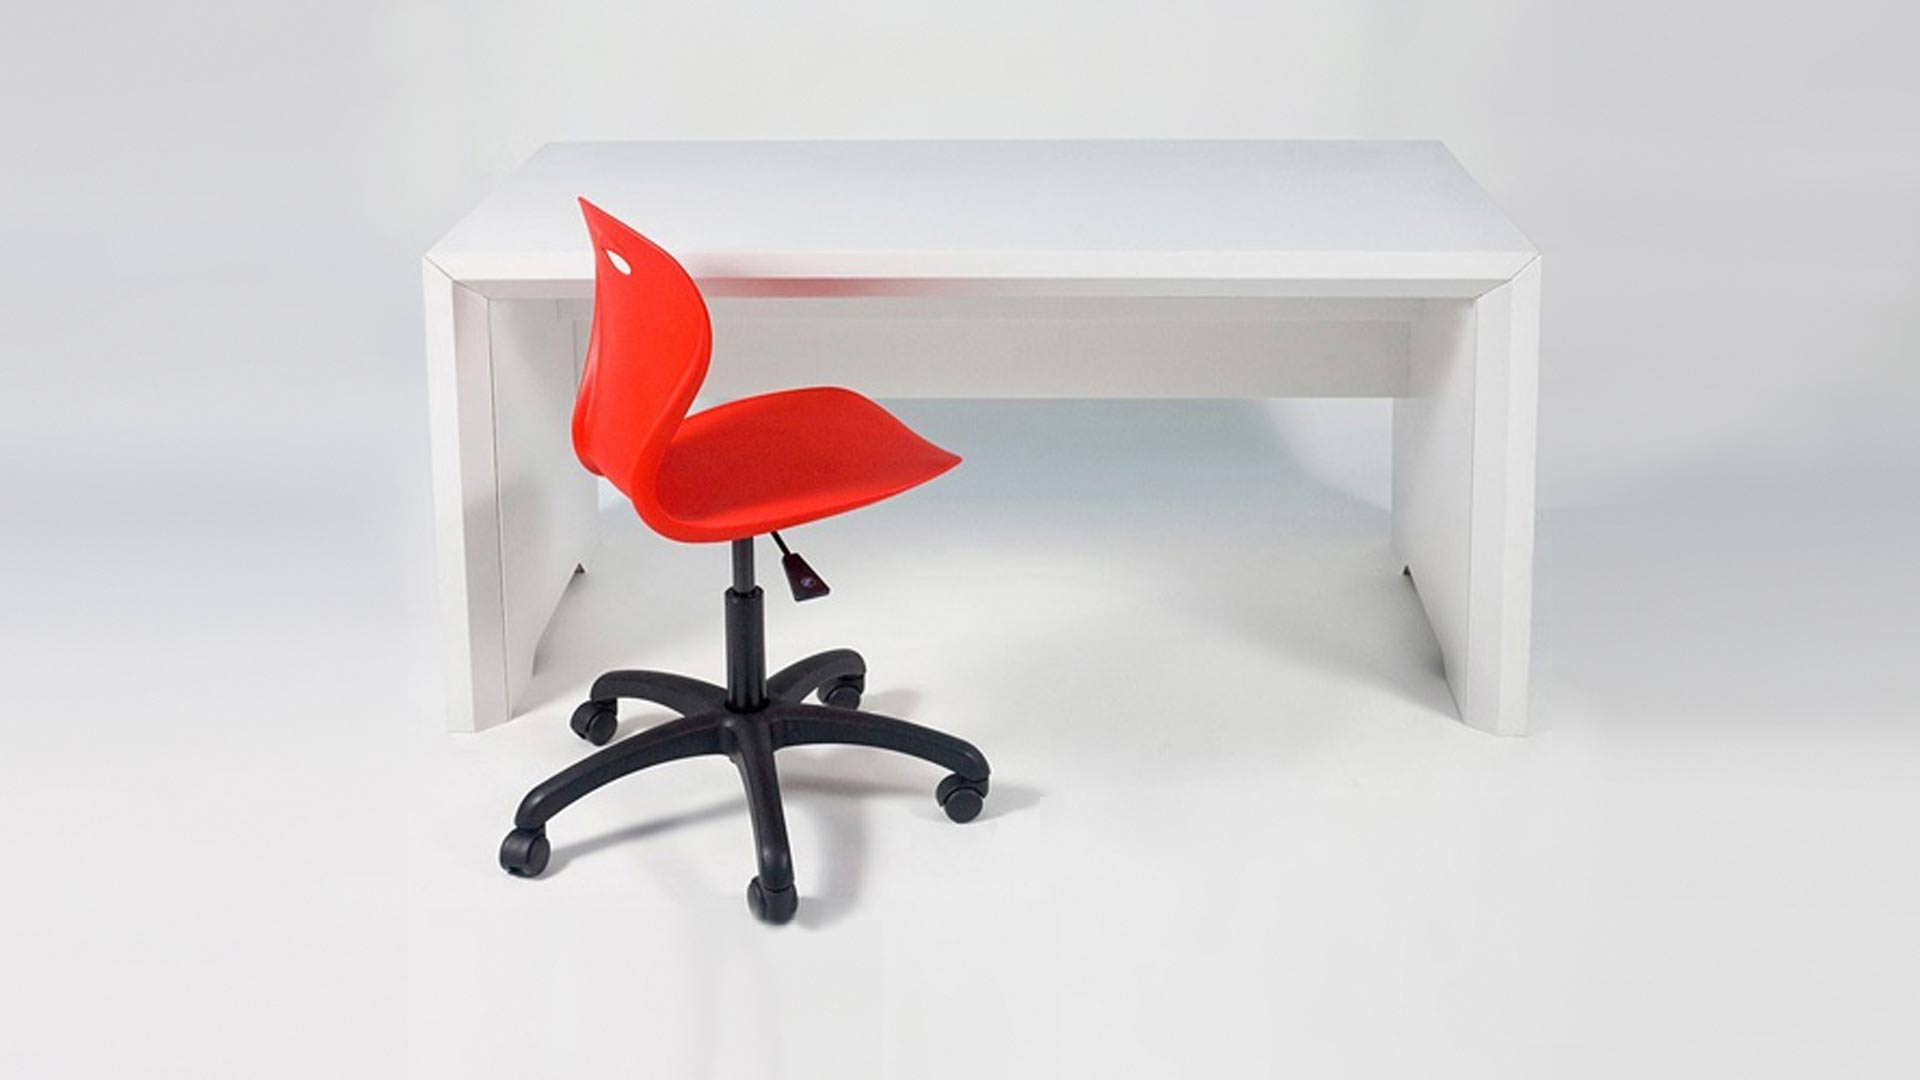 Flute desk liqui design for Design consultancy uk